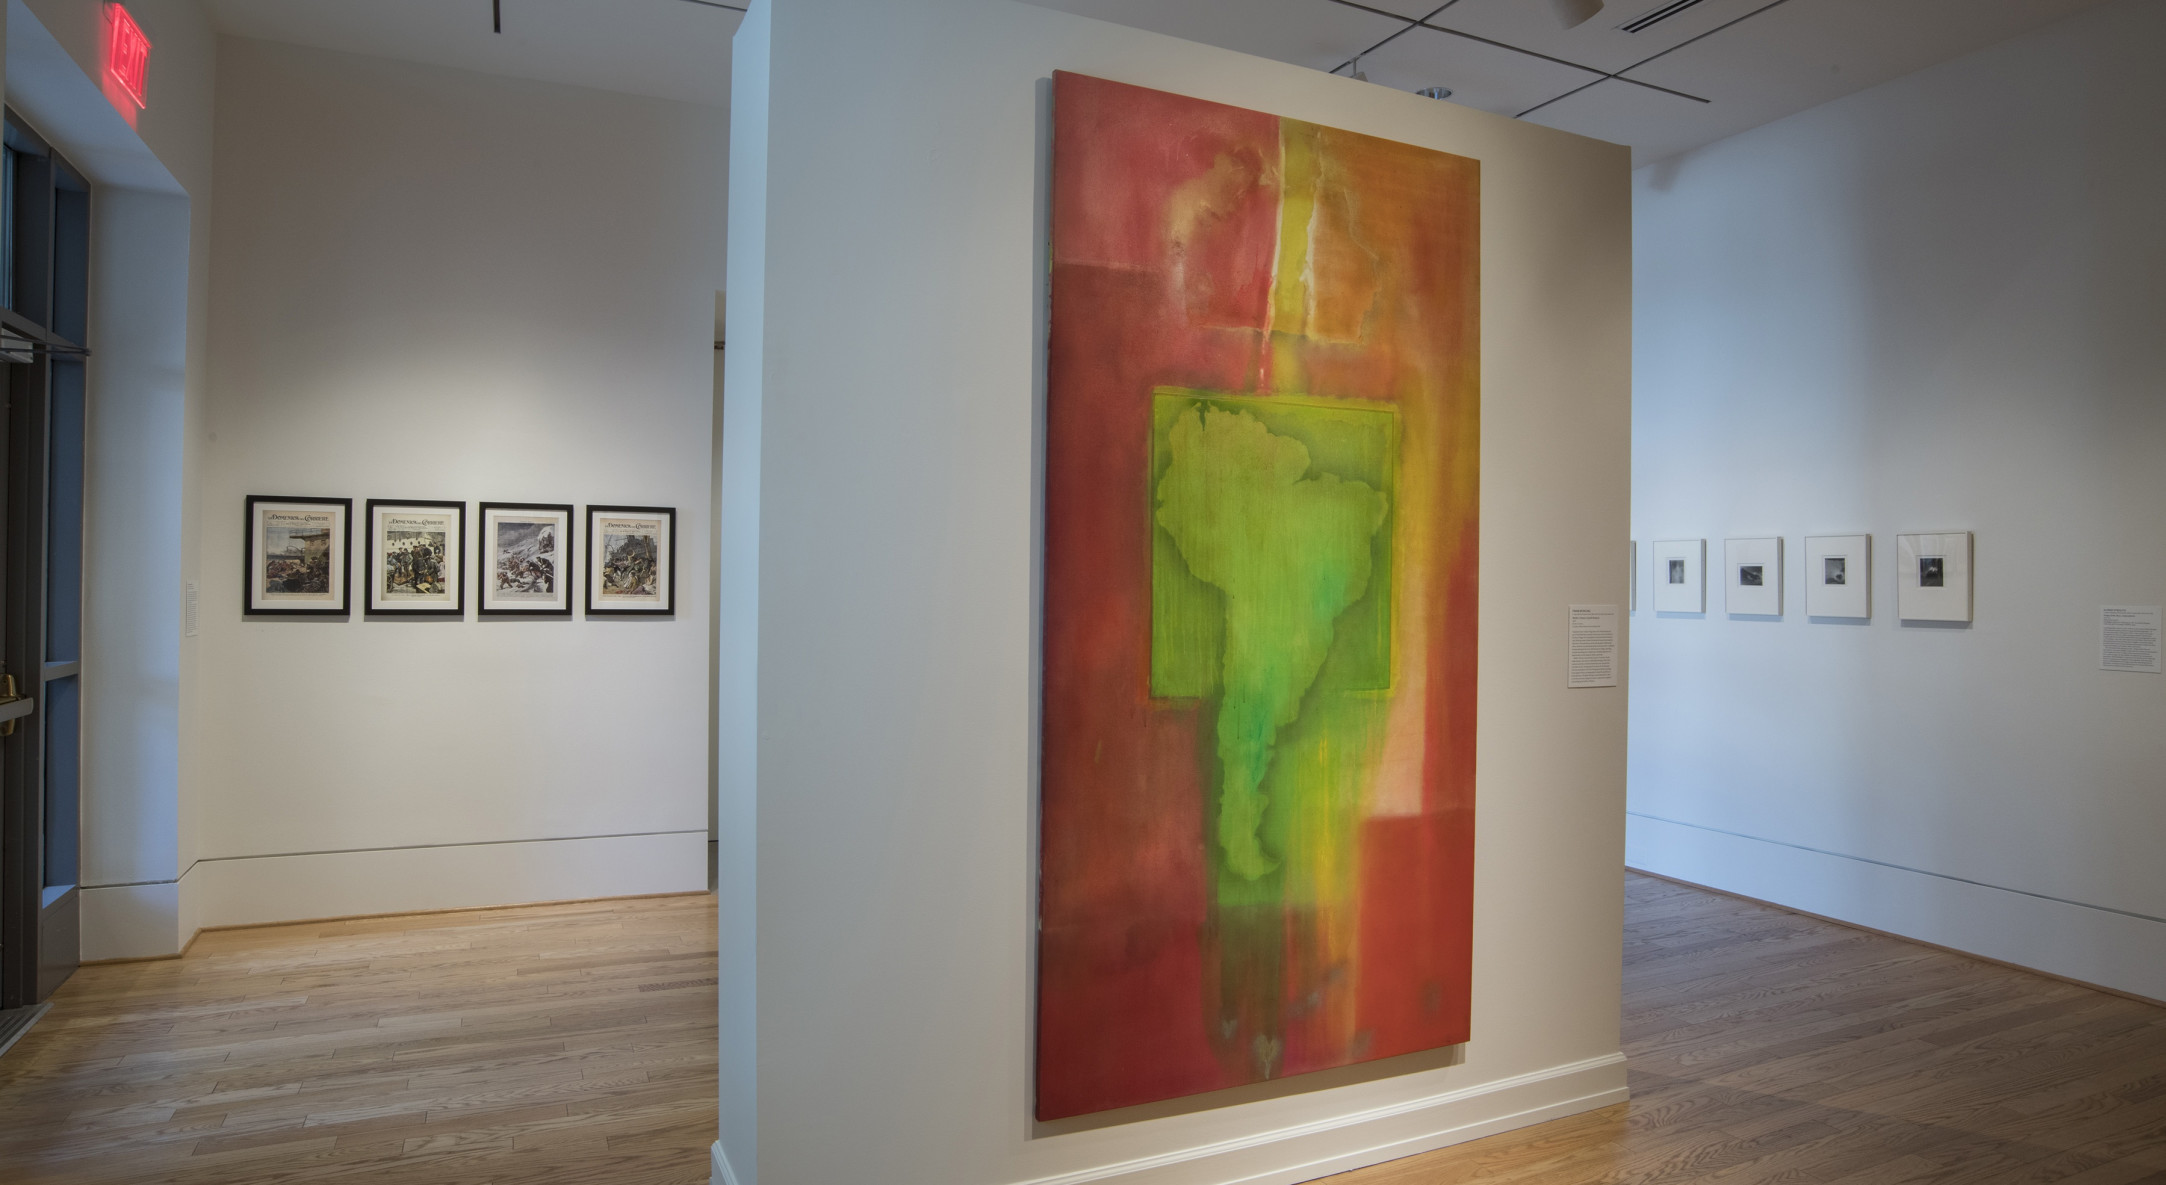 Installation view of Frank Bowling, The Warmth of Other Suns: Stories of Global Displacement at The Phillips Collection